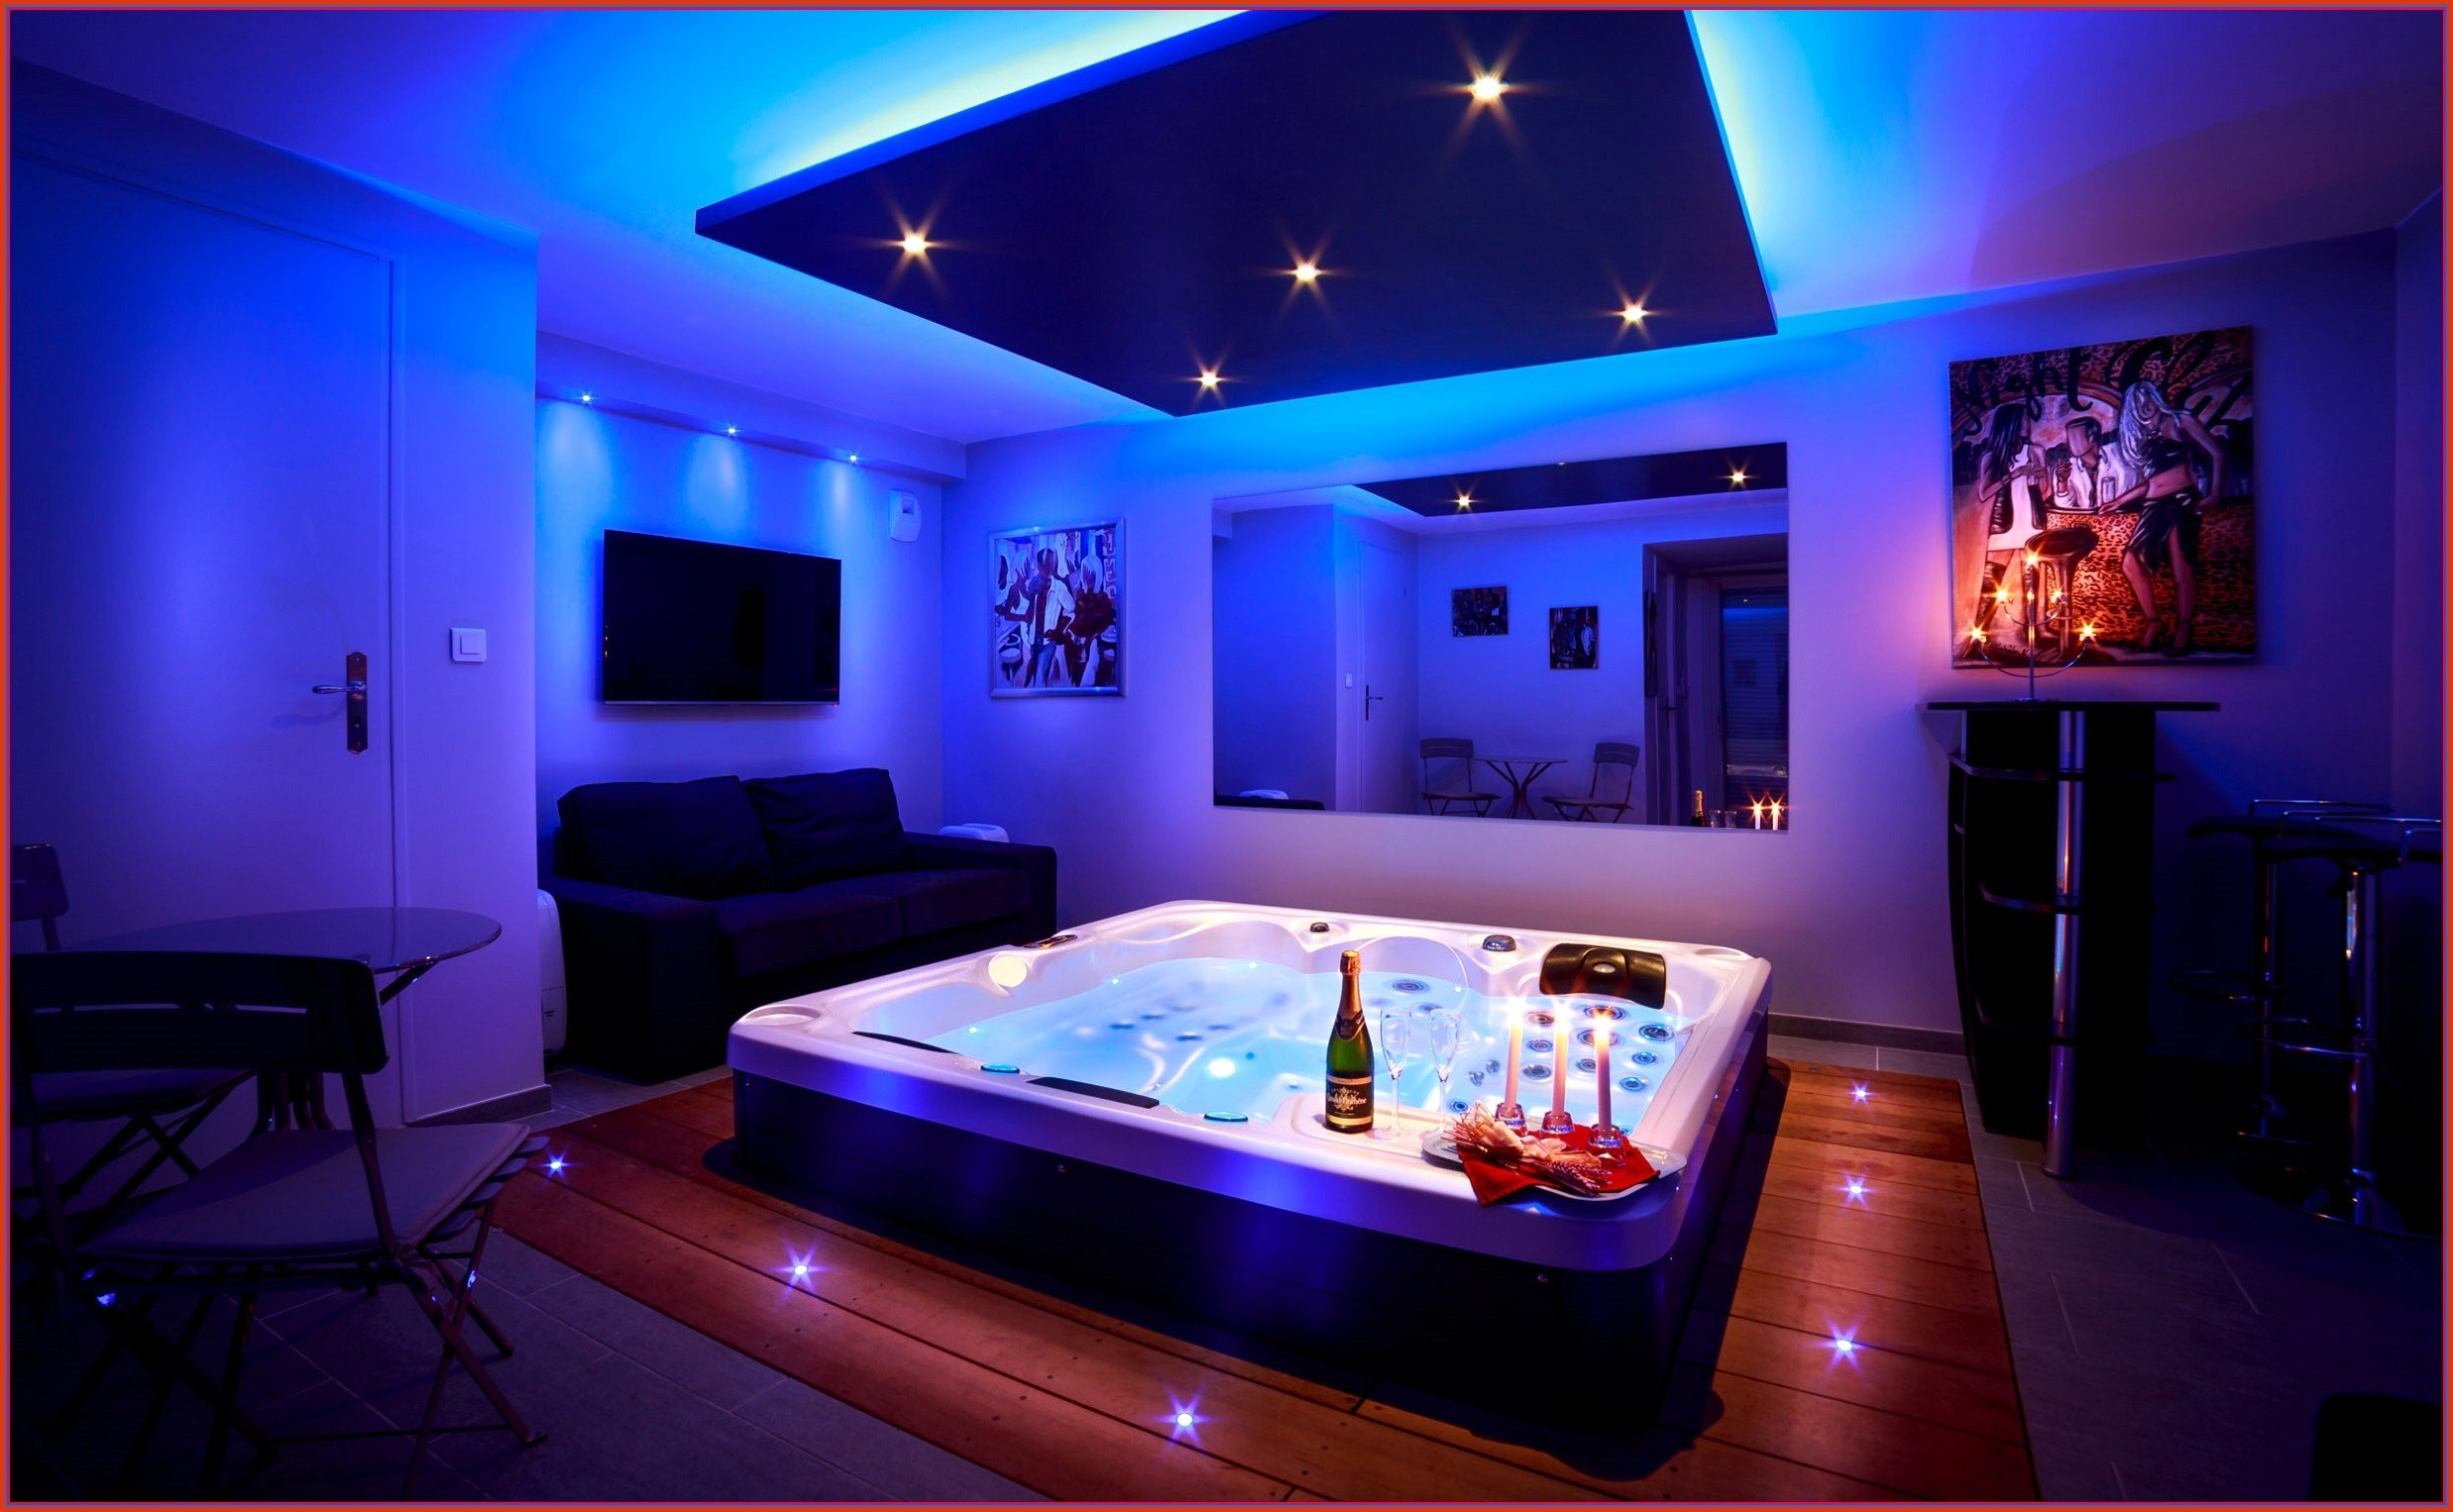 spa jacuzzi nuit nord